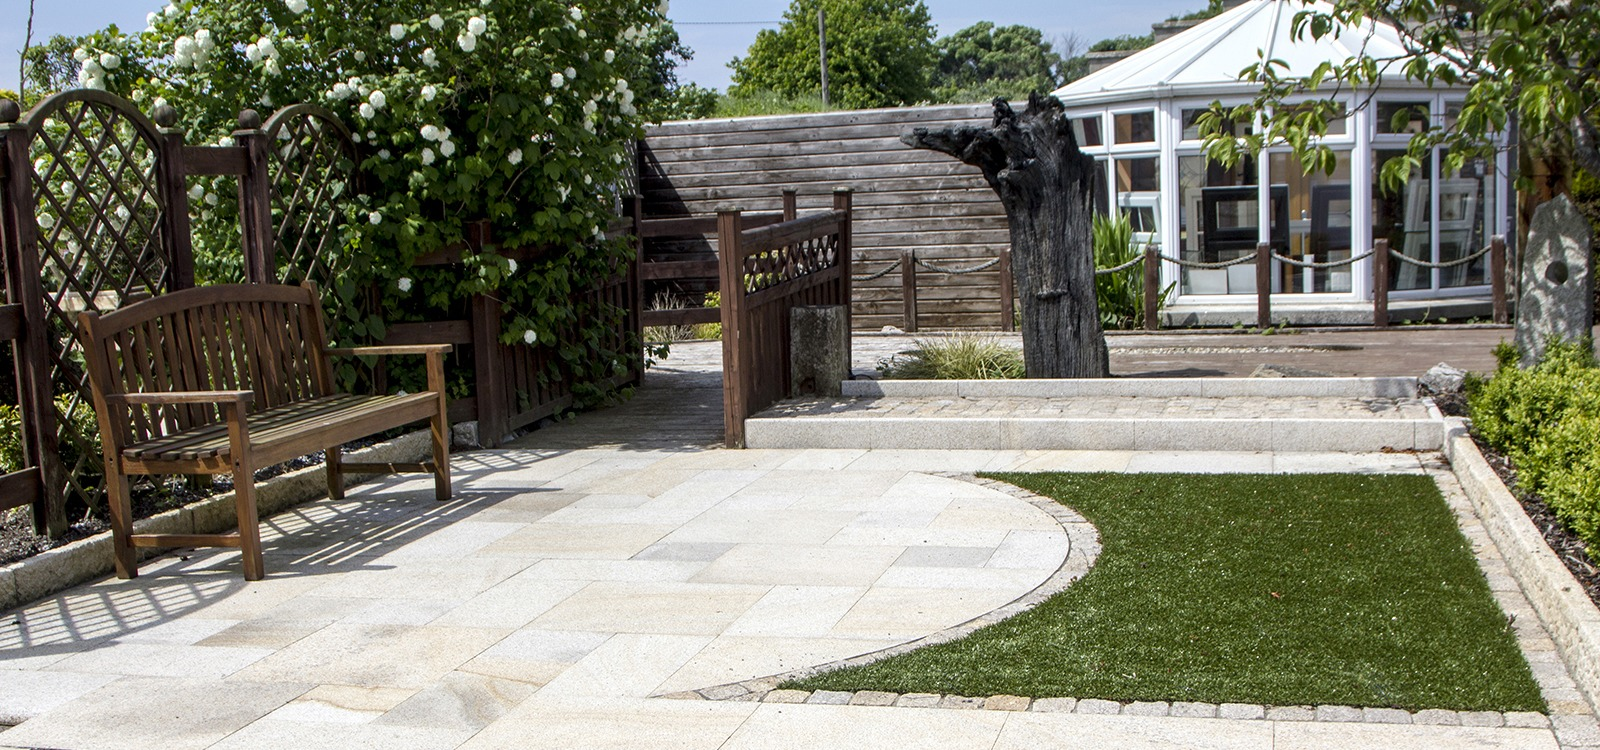 Breslin Paving - The Patio Centre